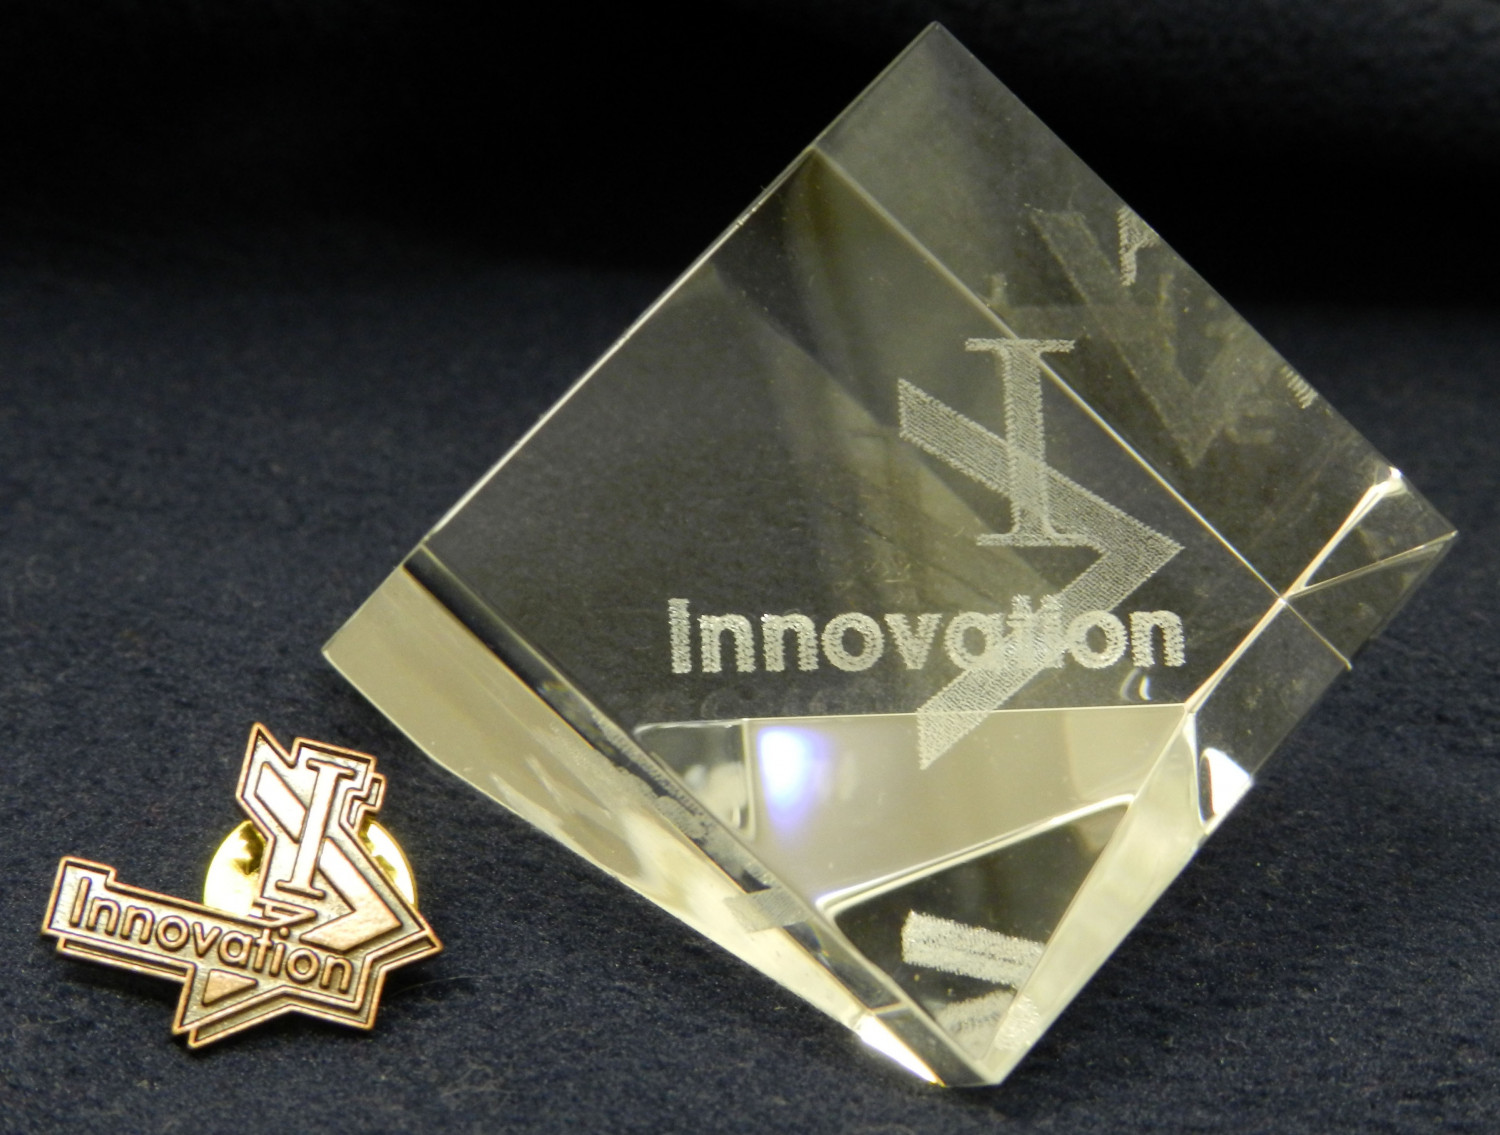 Chairman's Award for Innovation